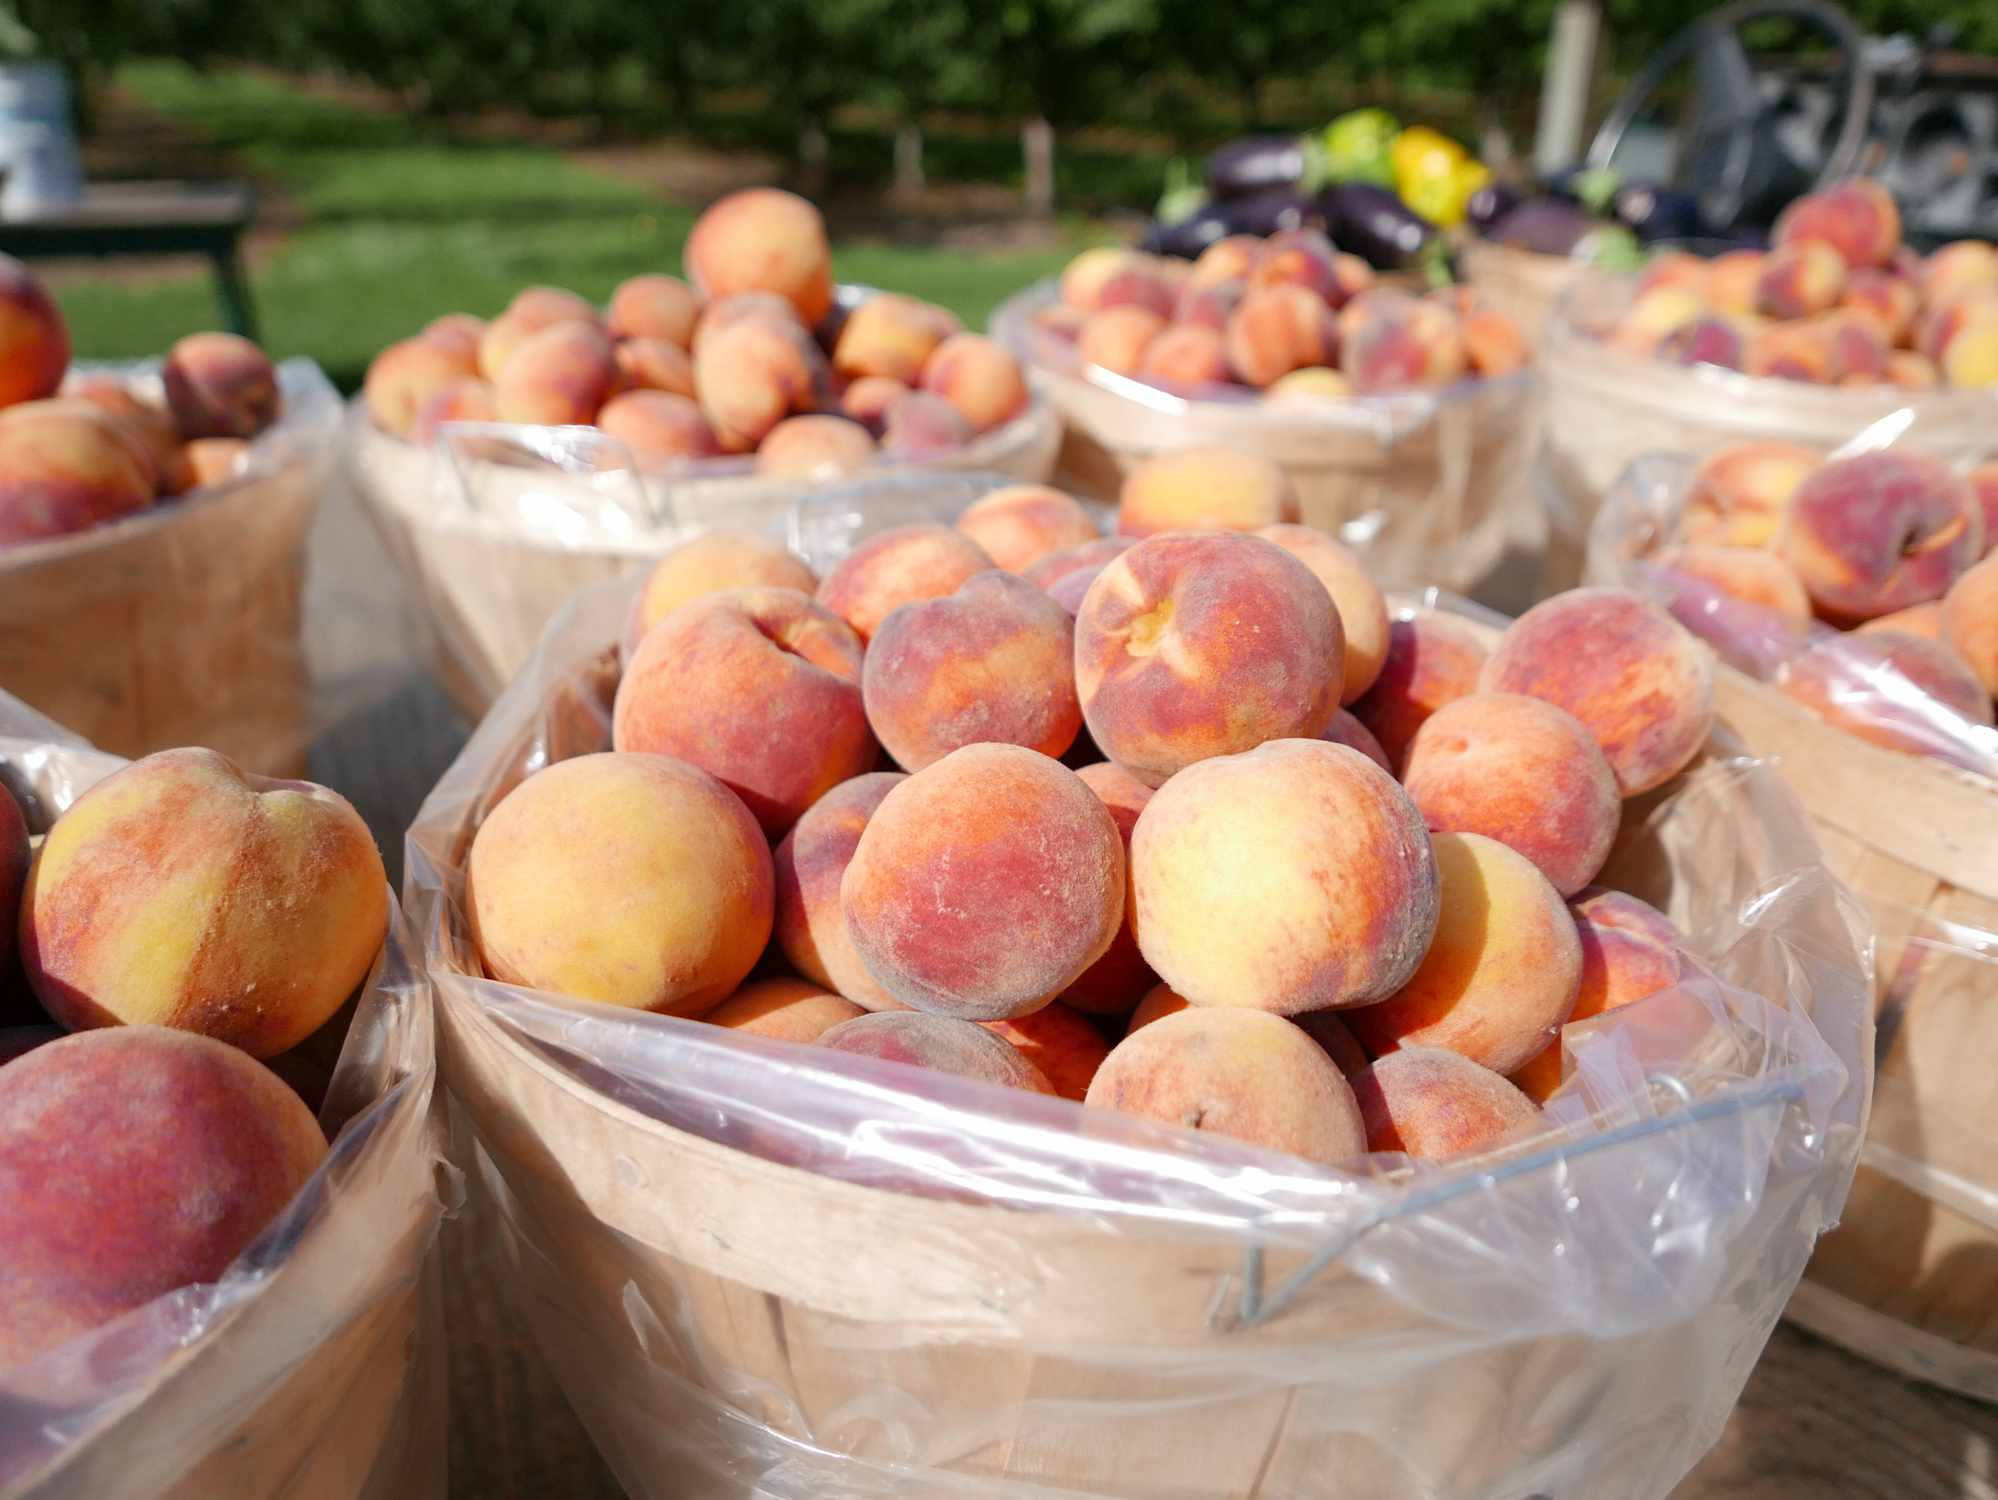 Baskets of Peaches